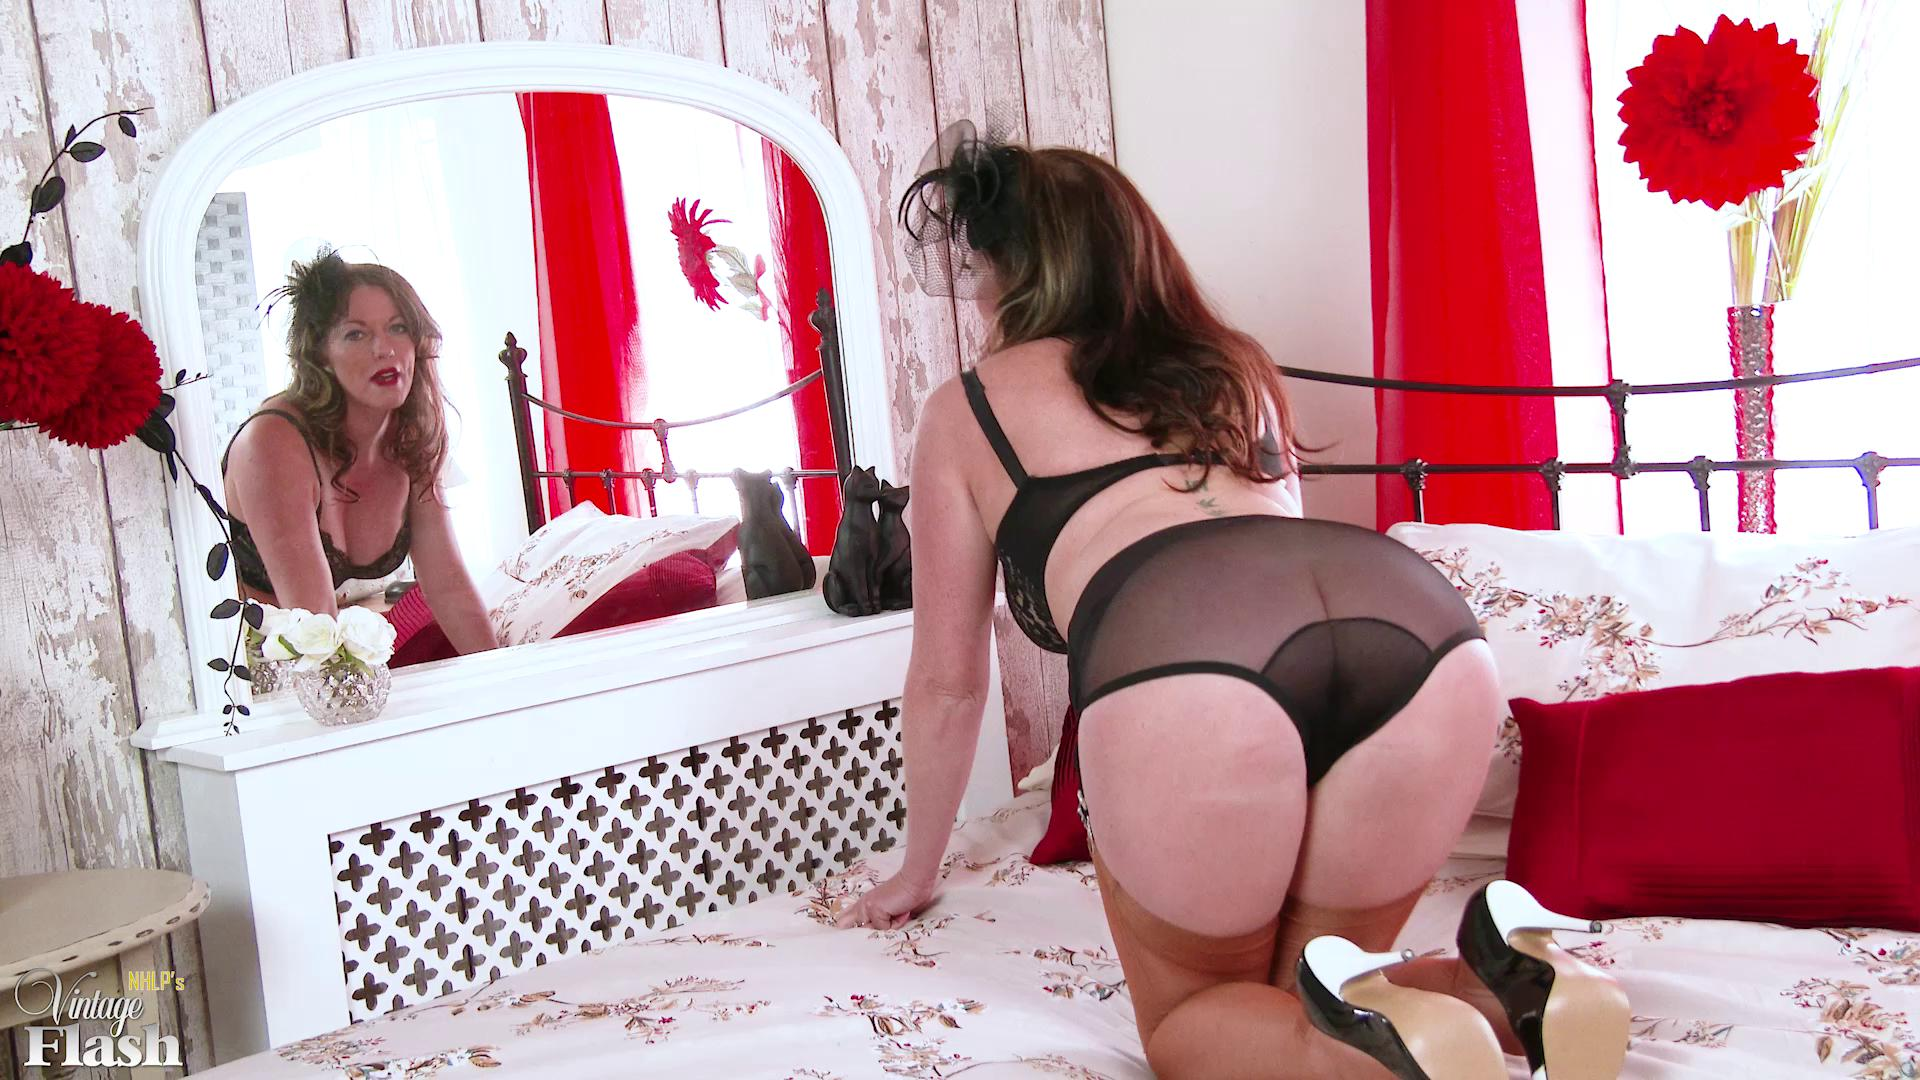 VintageFlash – Holly Kiss Hope You Get To Use Me